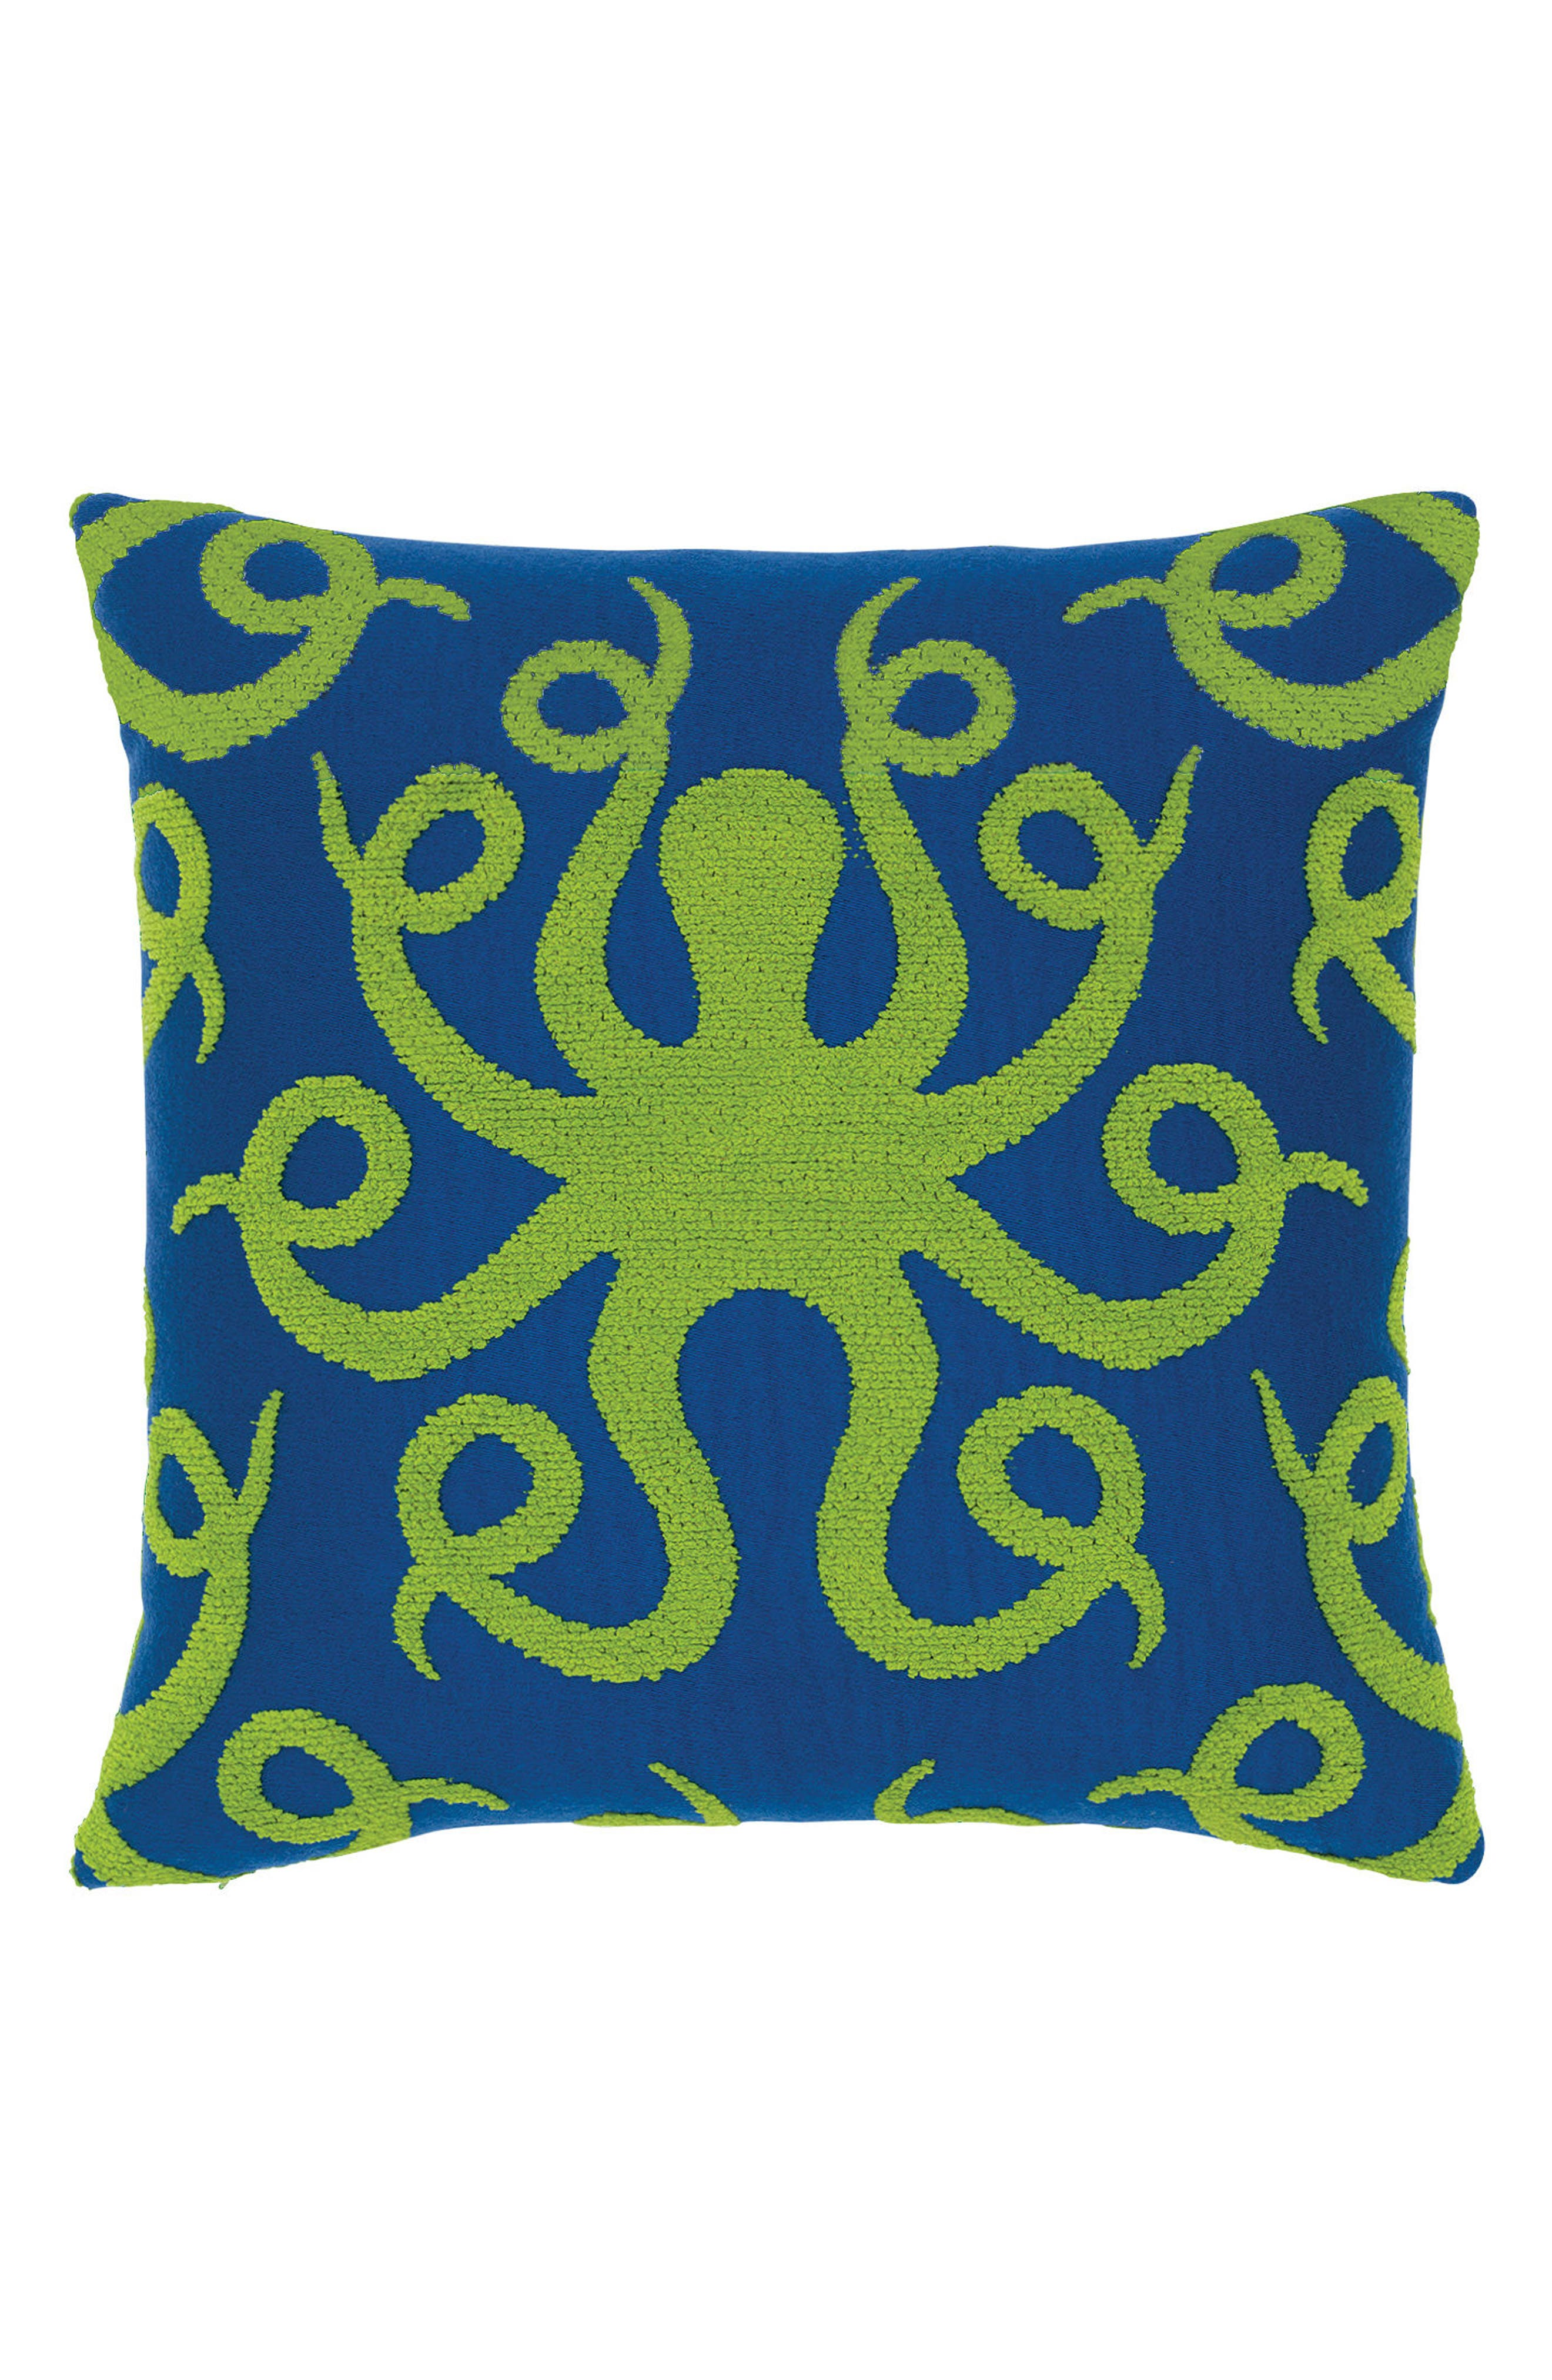 Octoplush Indoor/Outdoor Accent Pillow,                         Main,                         color, GREEN/ BLUE